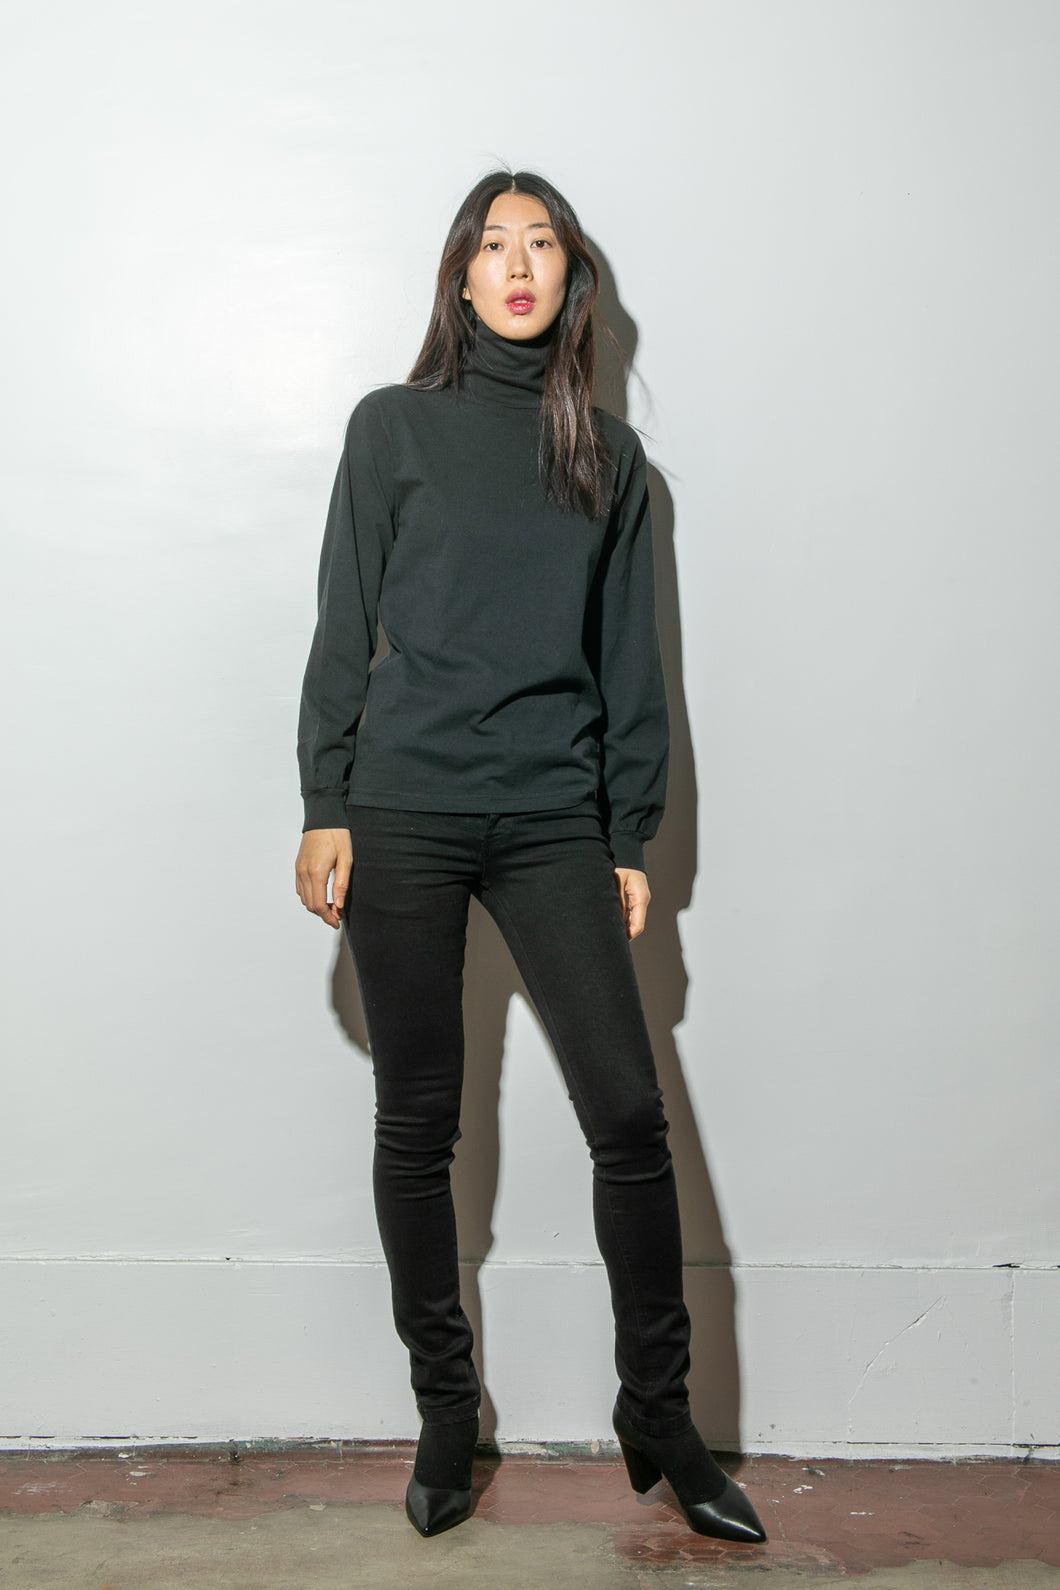 Hawthorne Turtleneck in Black by Oak